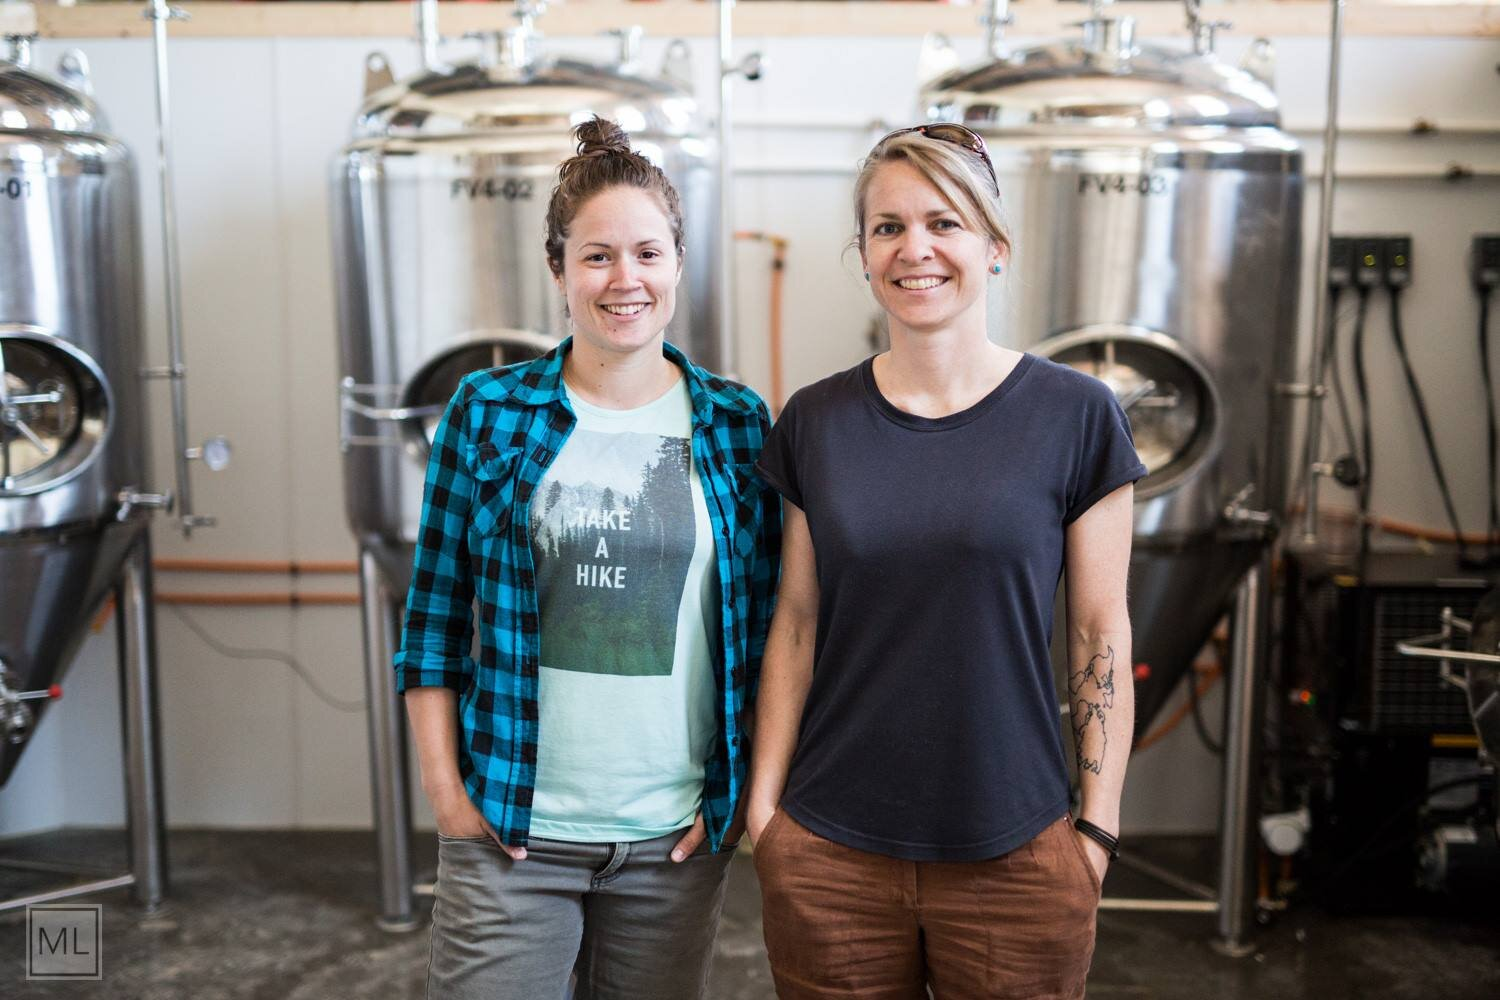 Port Rexton Brewing Co. owners Alicia MacDonald & Sonja Mills (Courtesy of Port Rexton Brewing Co.)